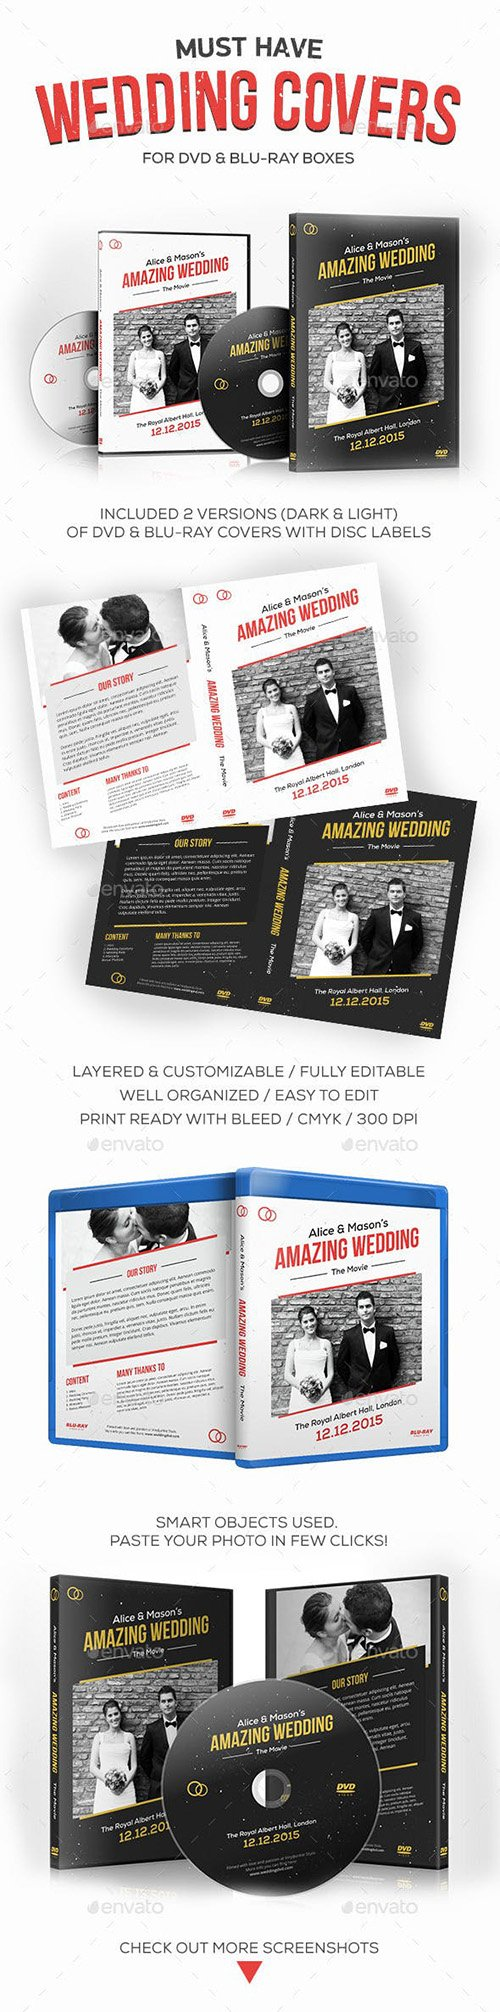 GR - Wedding DVD / Blu-ray Covers with Disc Labels 9878068